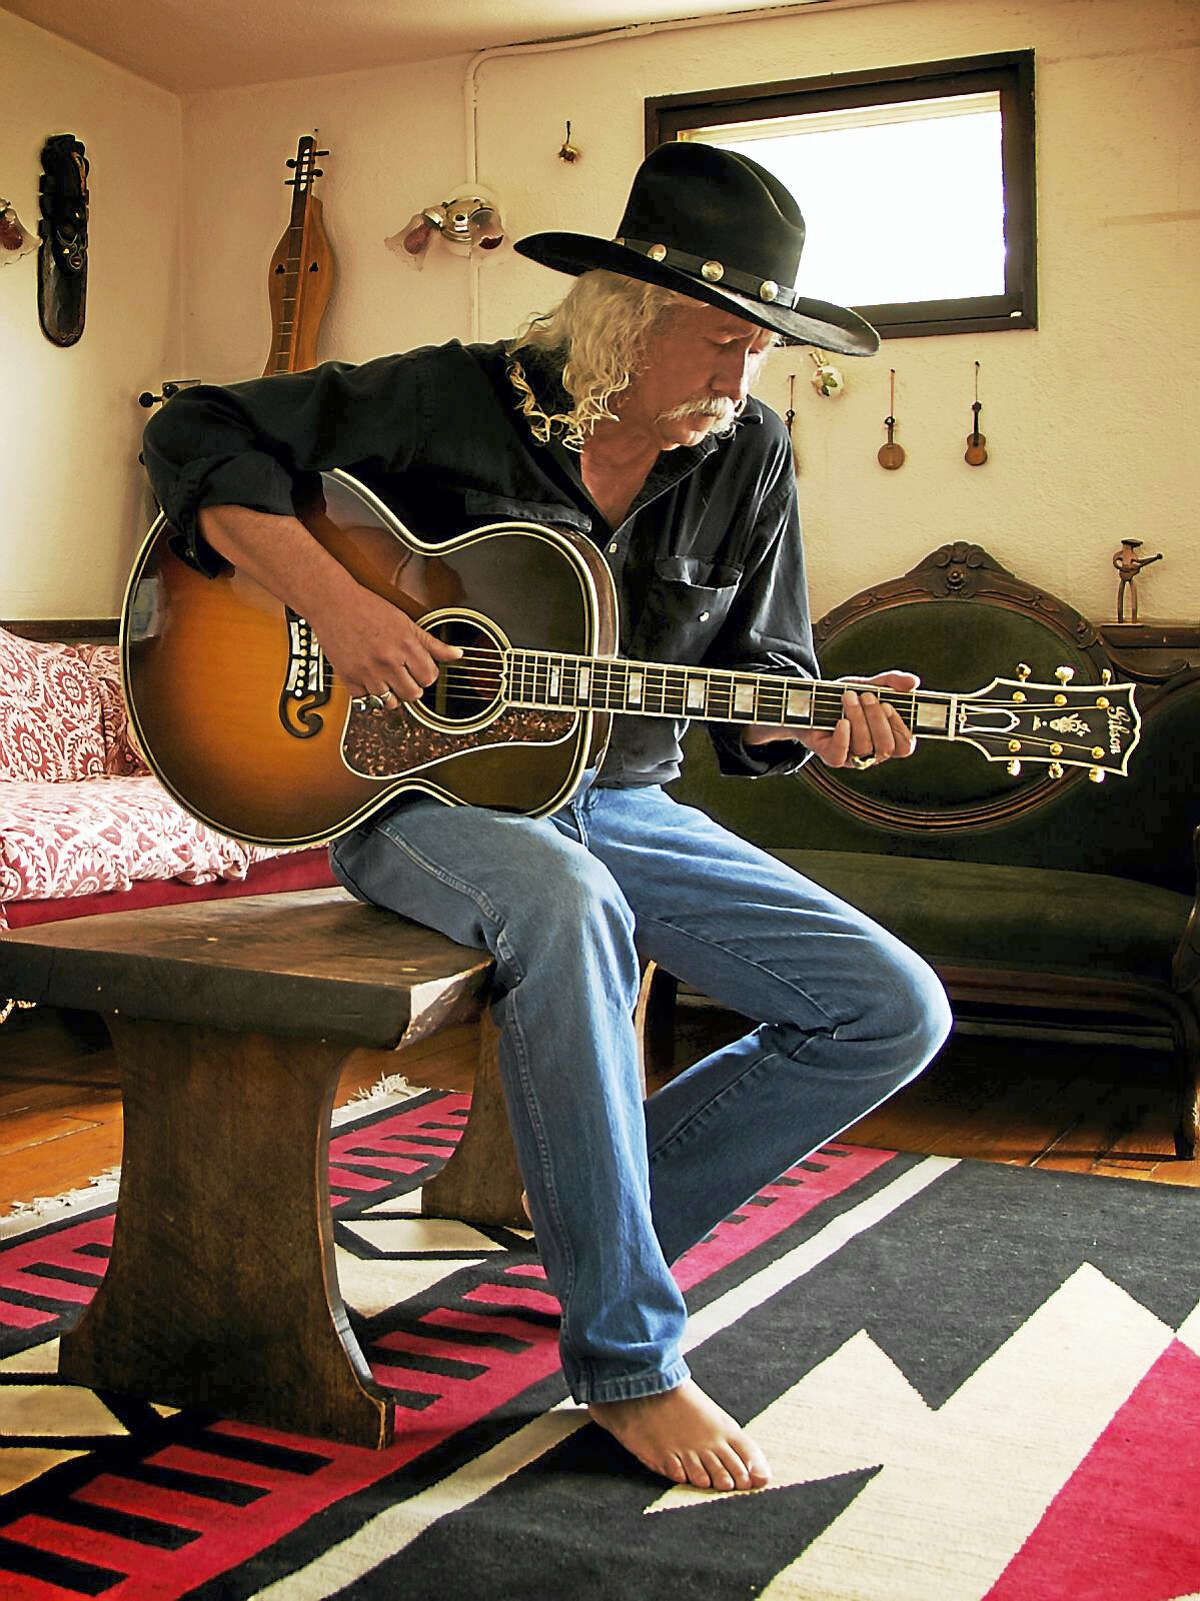 Contributed photoArlo Guthrie is scheduled to perform at the Warner Theatre in September.